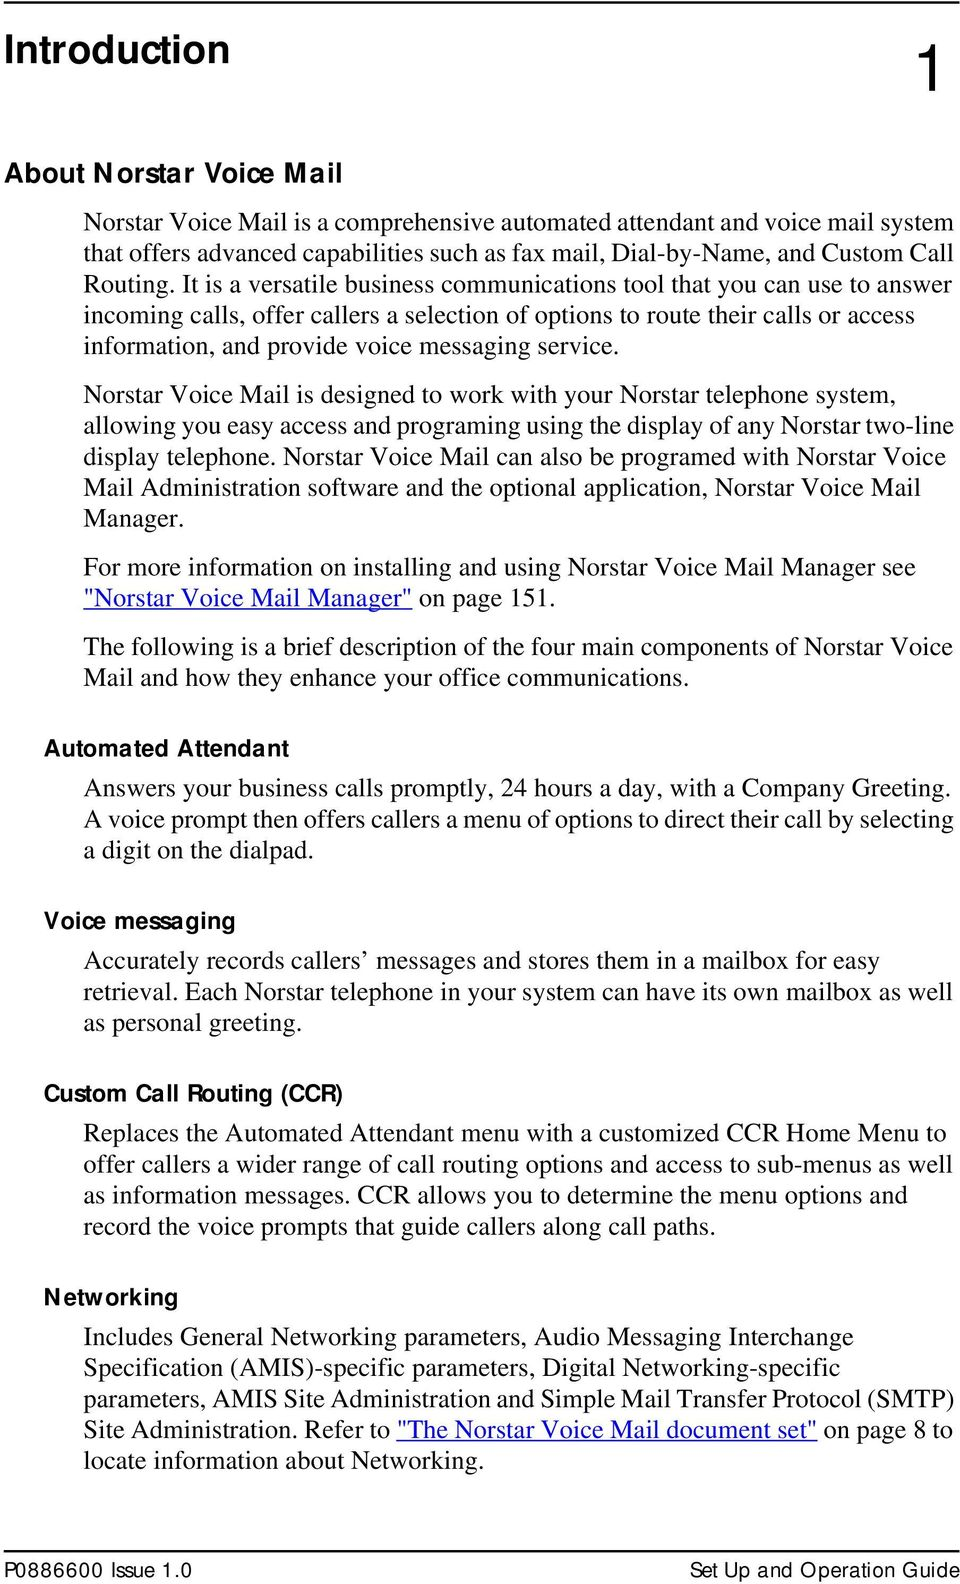 norstar voice mail 4 0 set up and operation guide pdf rh docplayer net